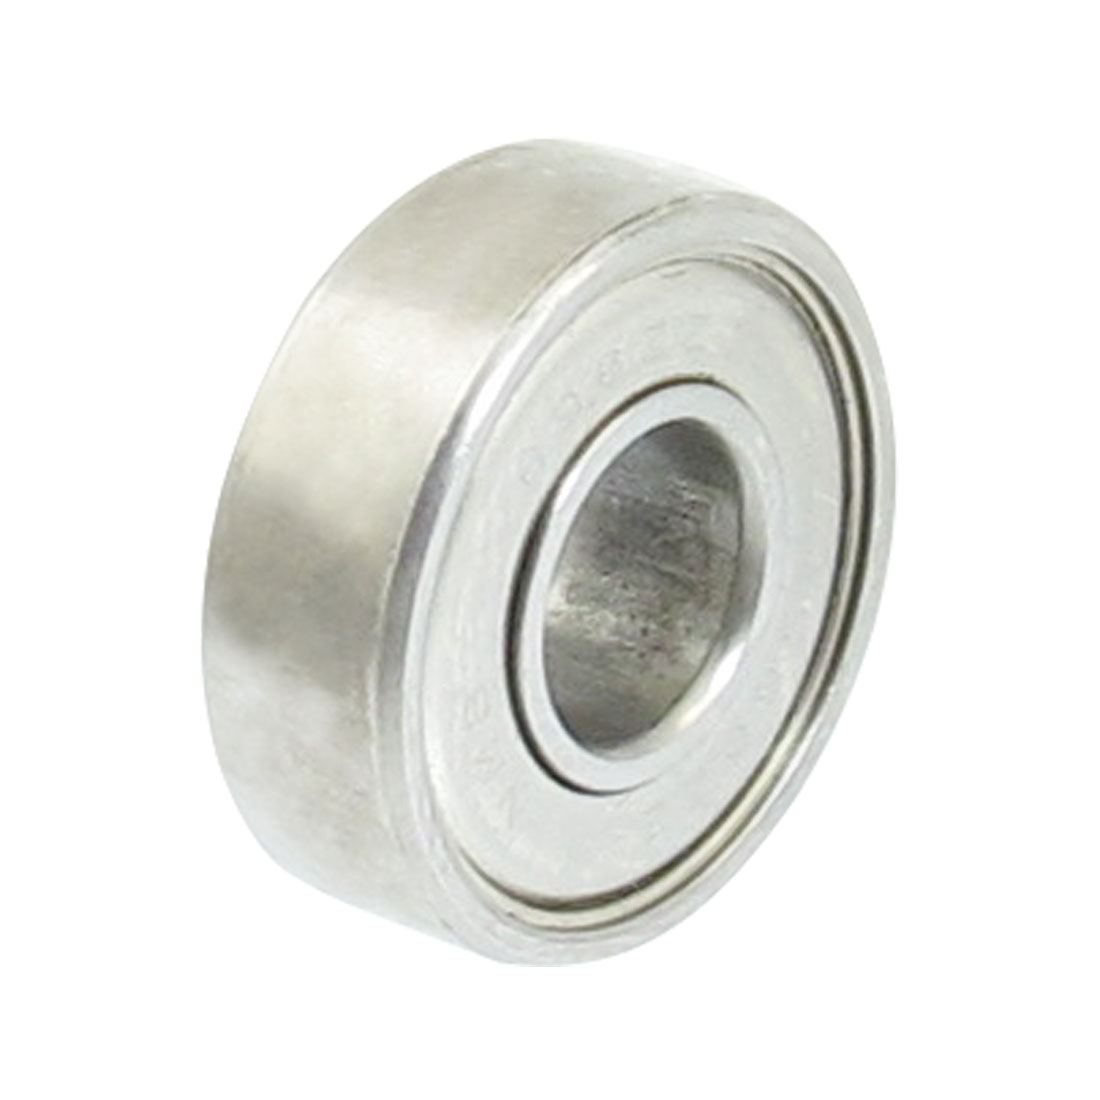 6mm x 15mm x 5mm Metal Sealed Deep Groove Ball Bearing for Makita 9553NB